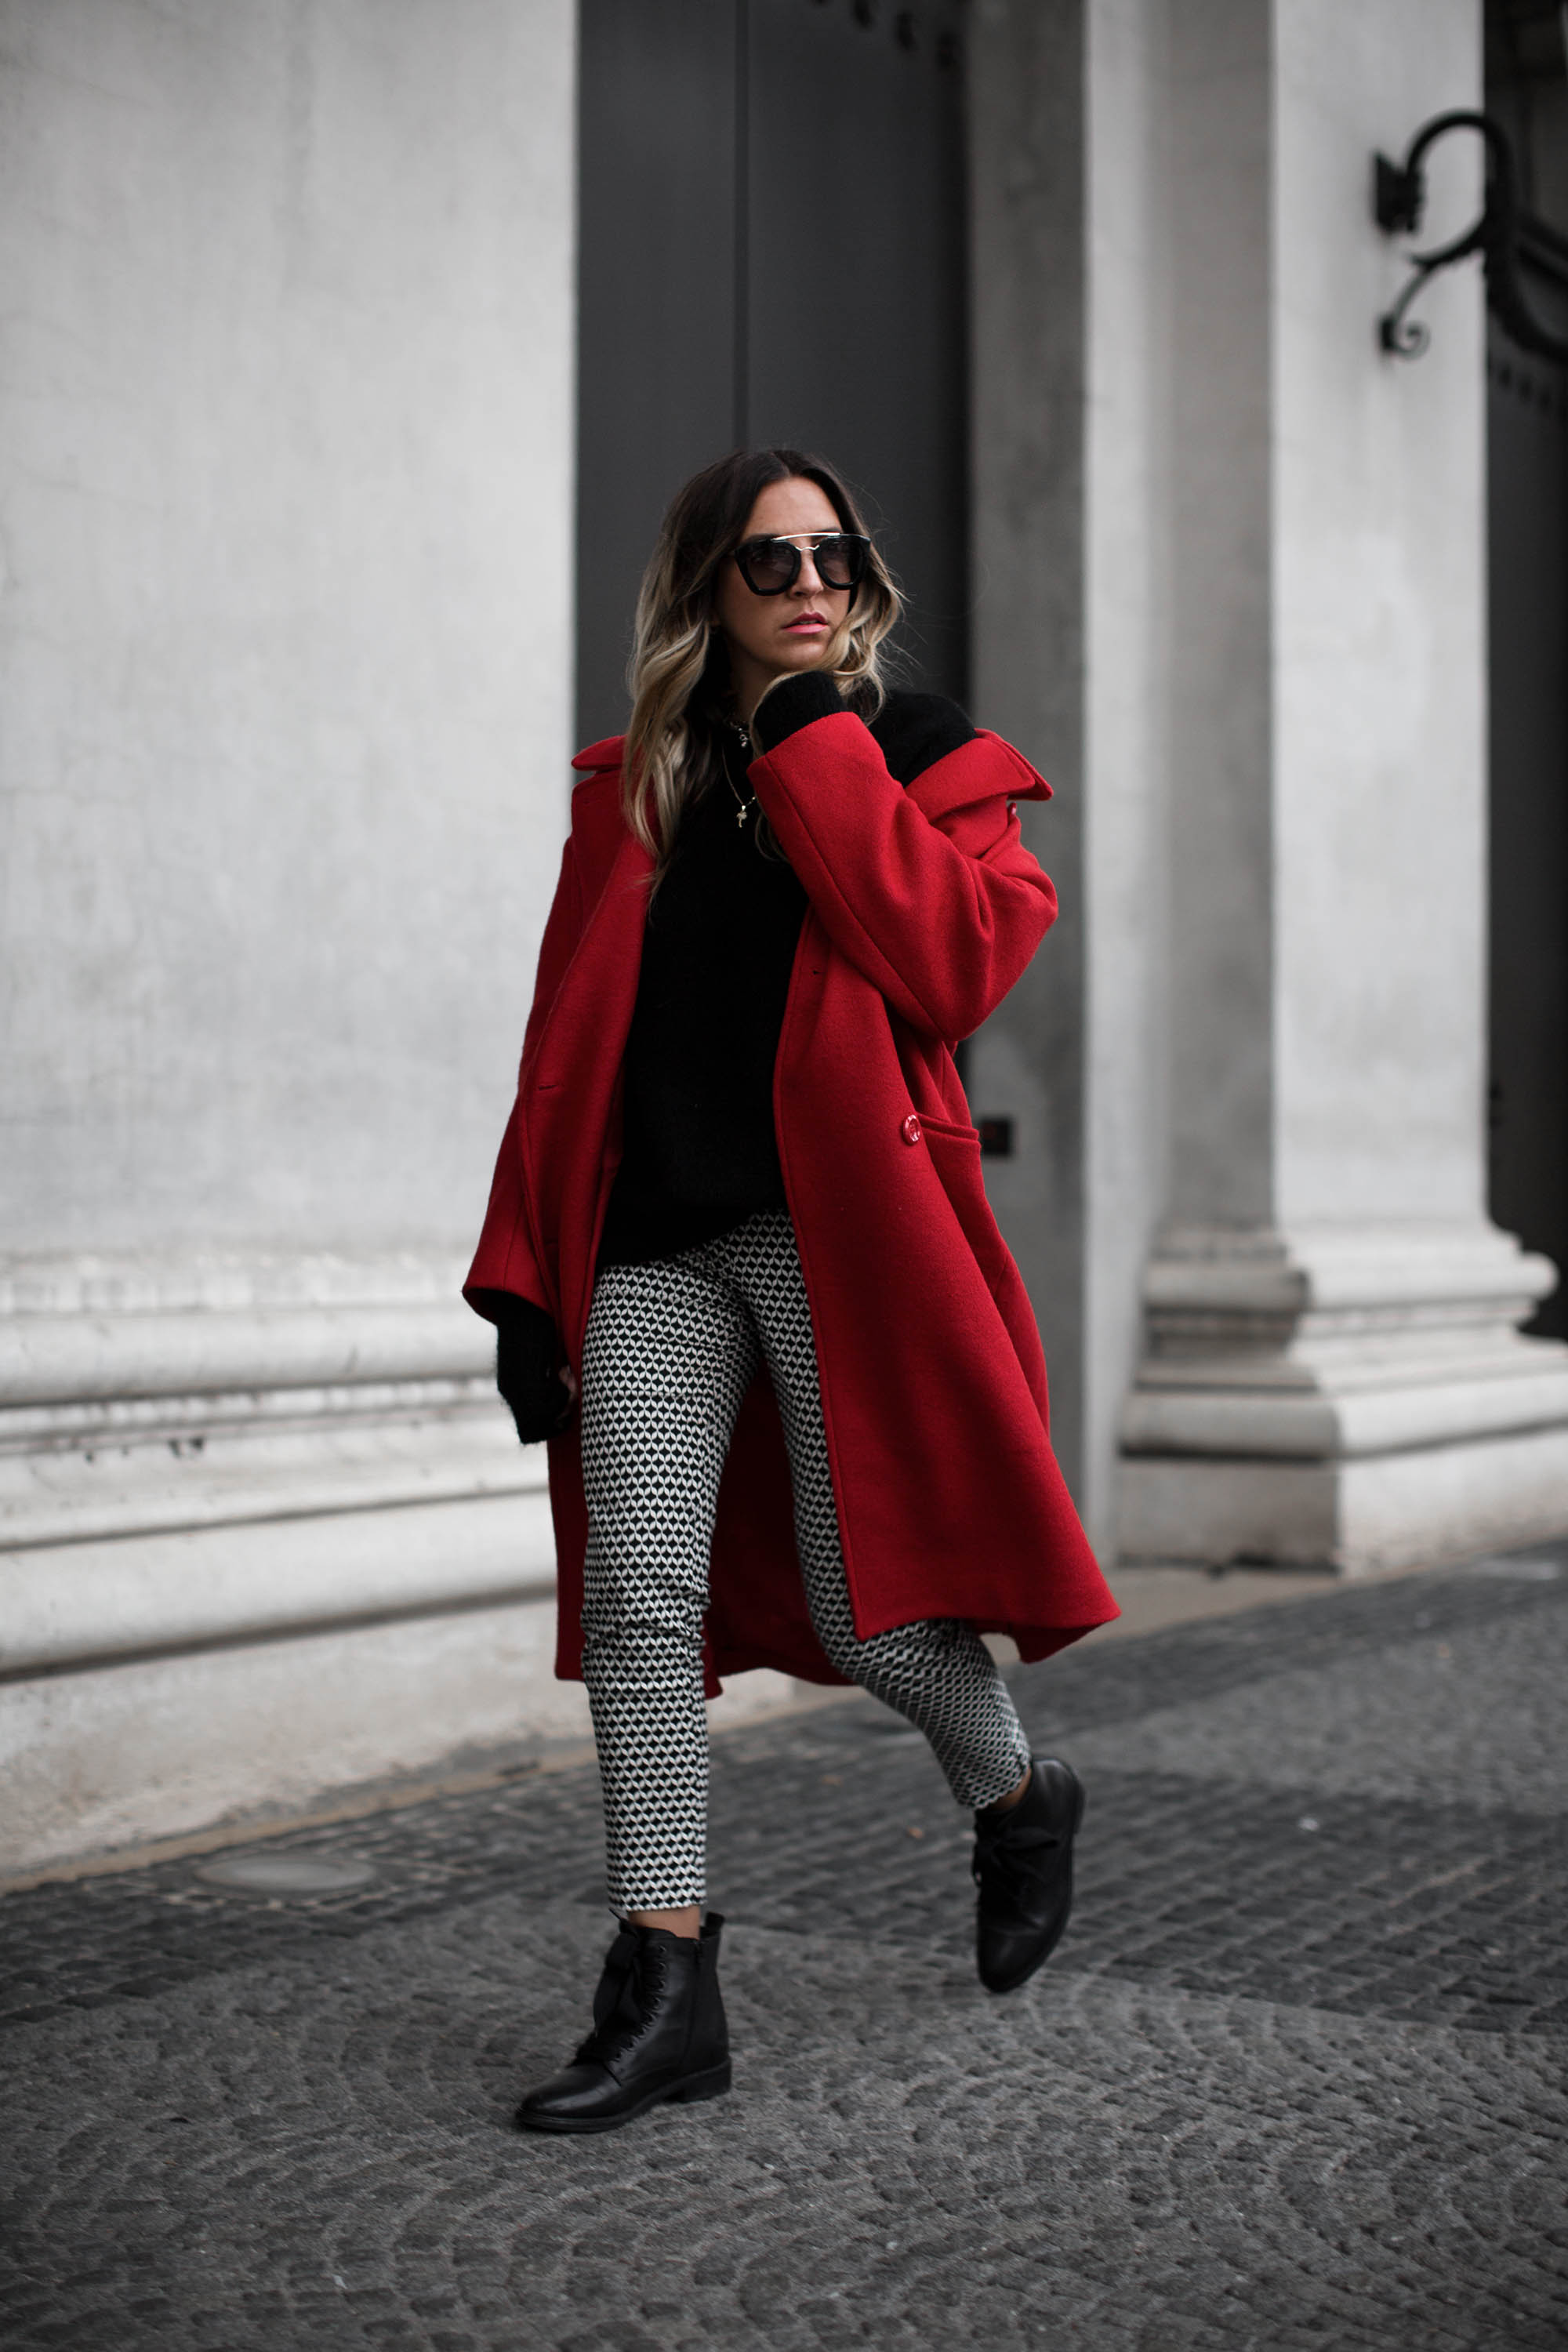 black-palms-hm-roter-mantel-boots-edited-streestyle-fashionblog-5